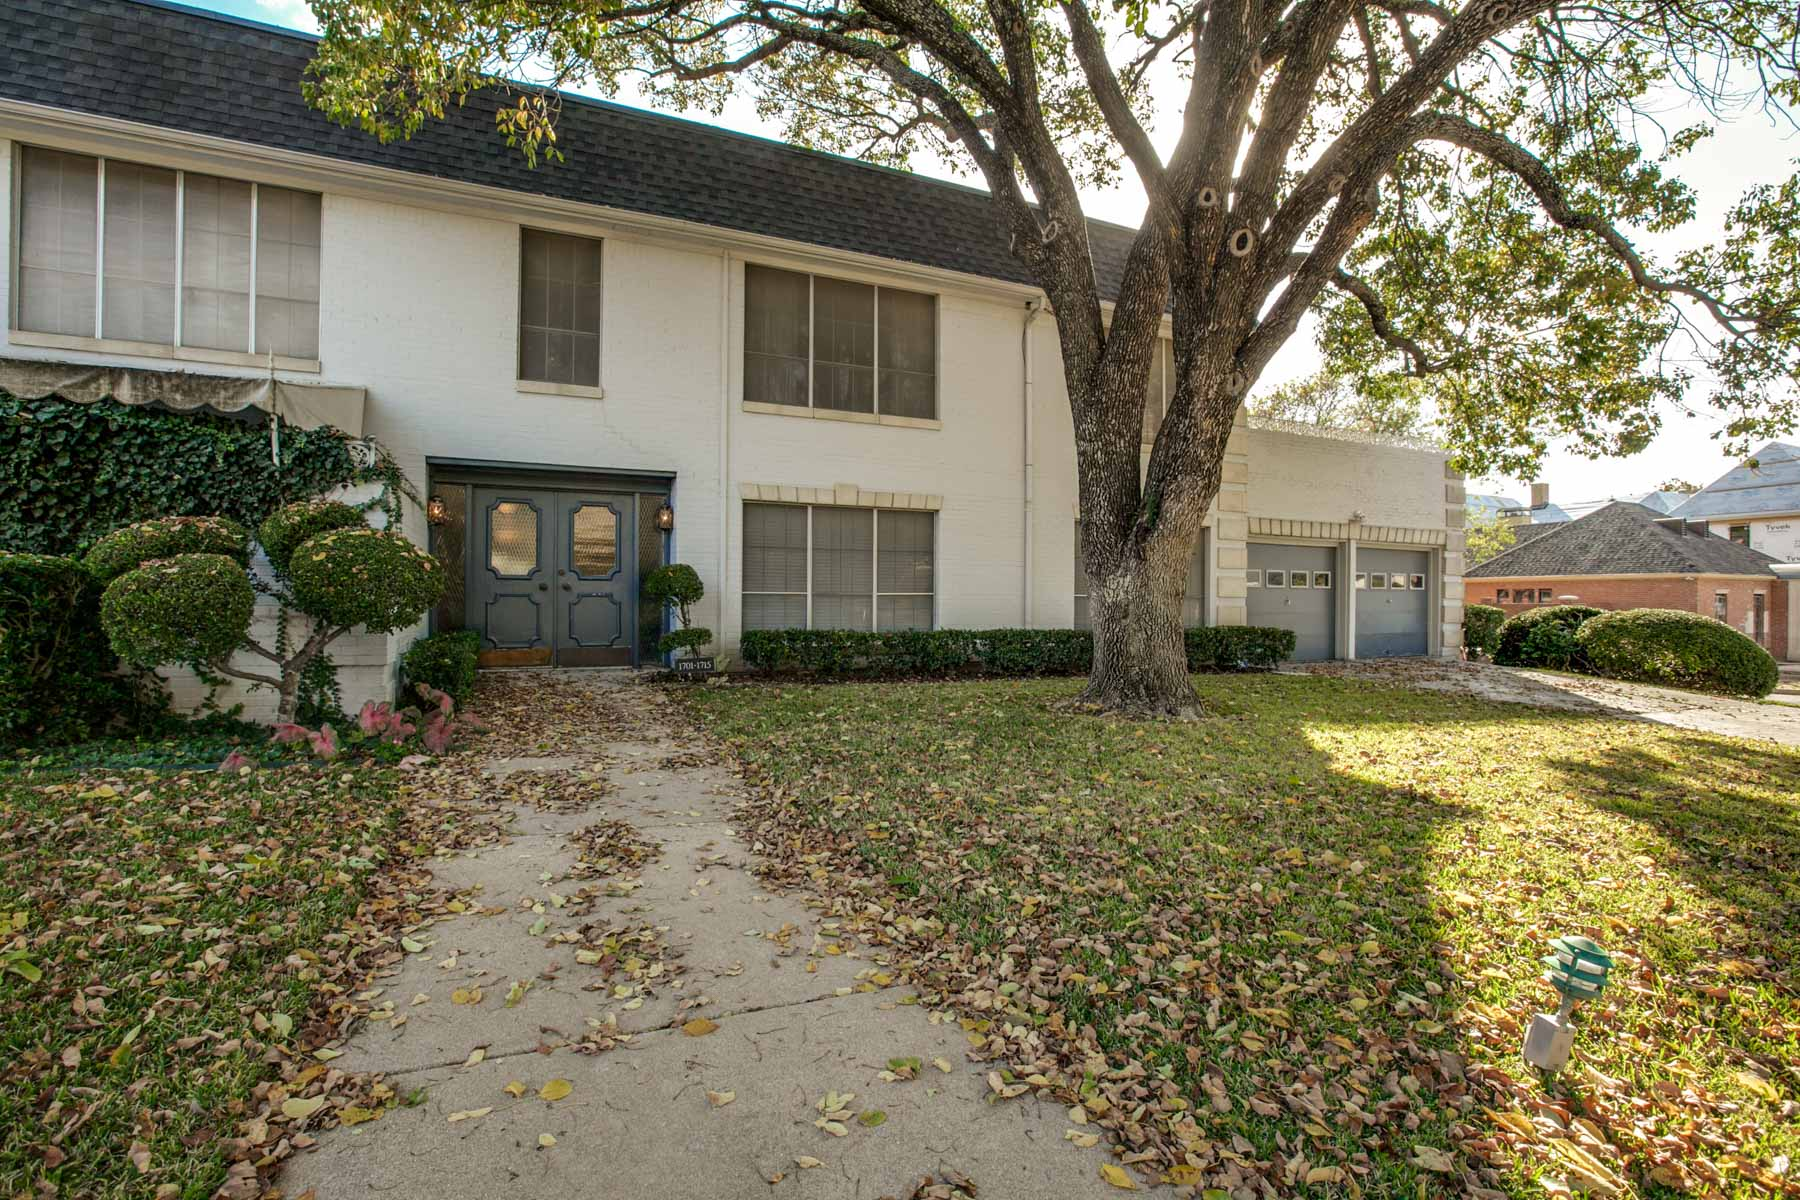 Condominium for Sale at 1711 Hulen Street, Fort Worth Fort Worth, Texas, 76107 United States